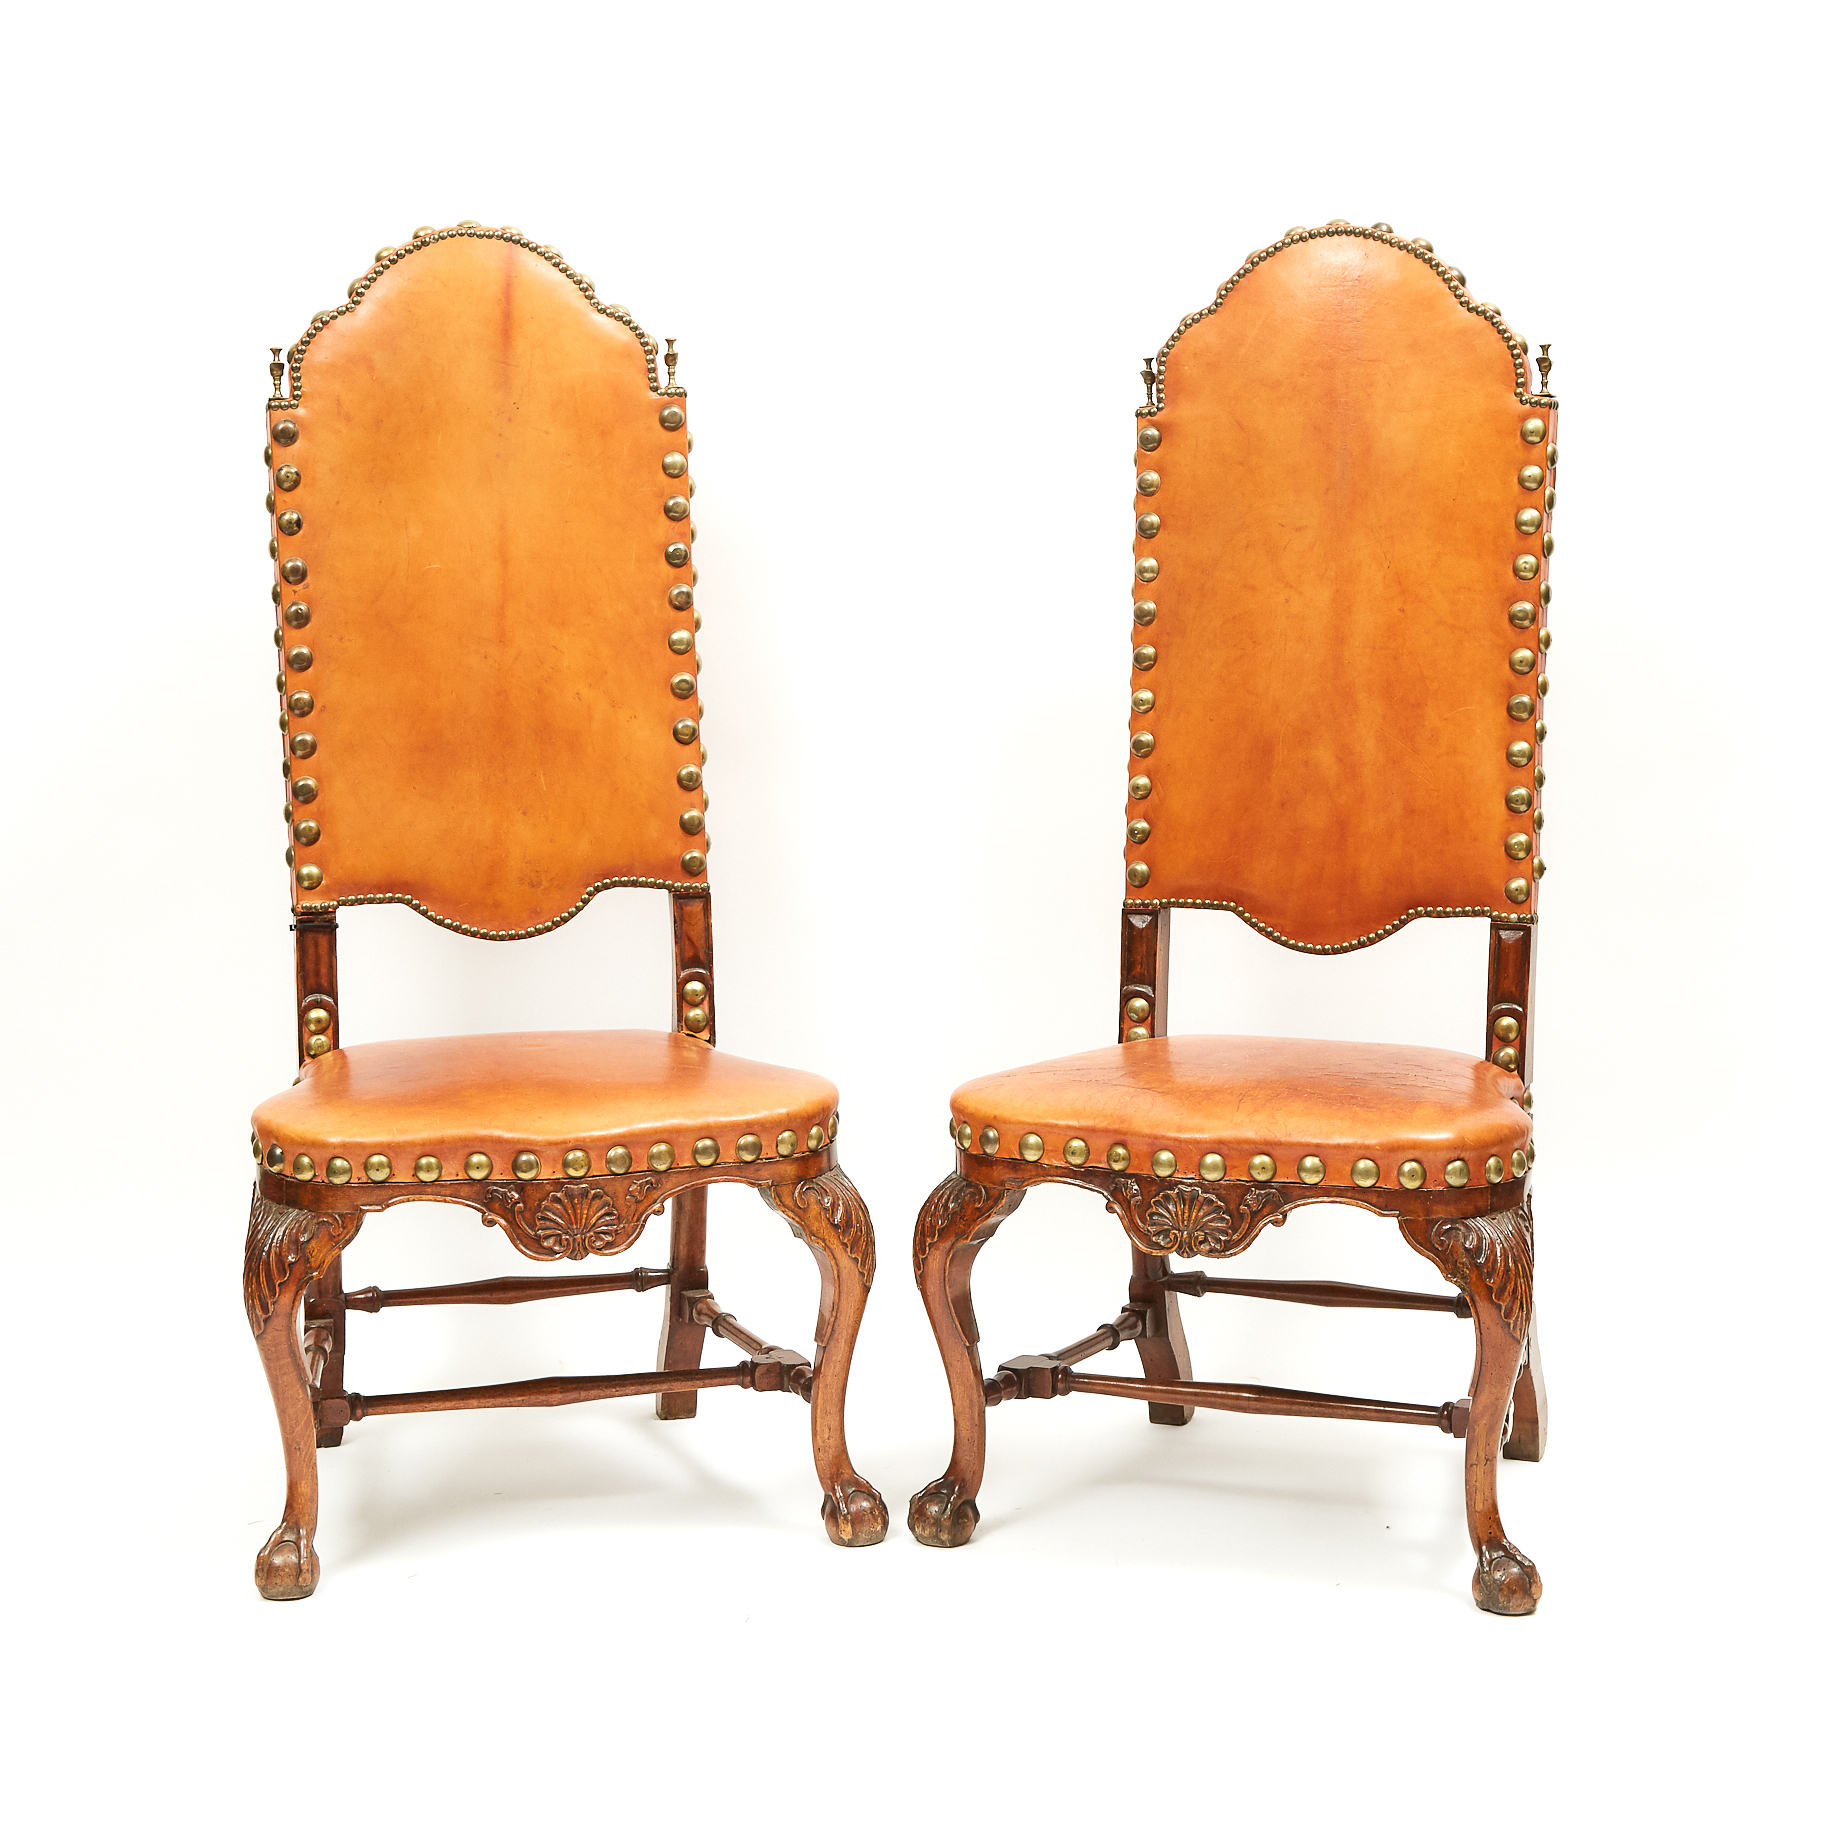 Pair of George I Style Walnut Side Chairs, 19th century